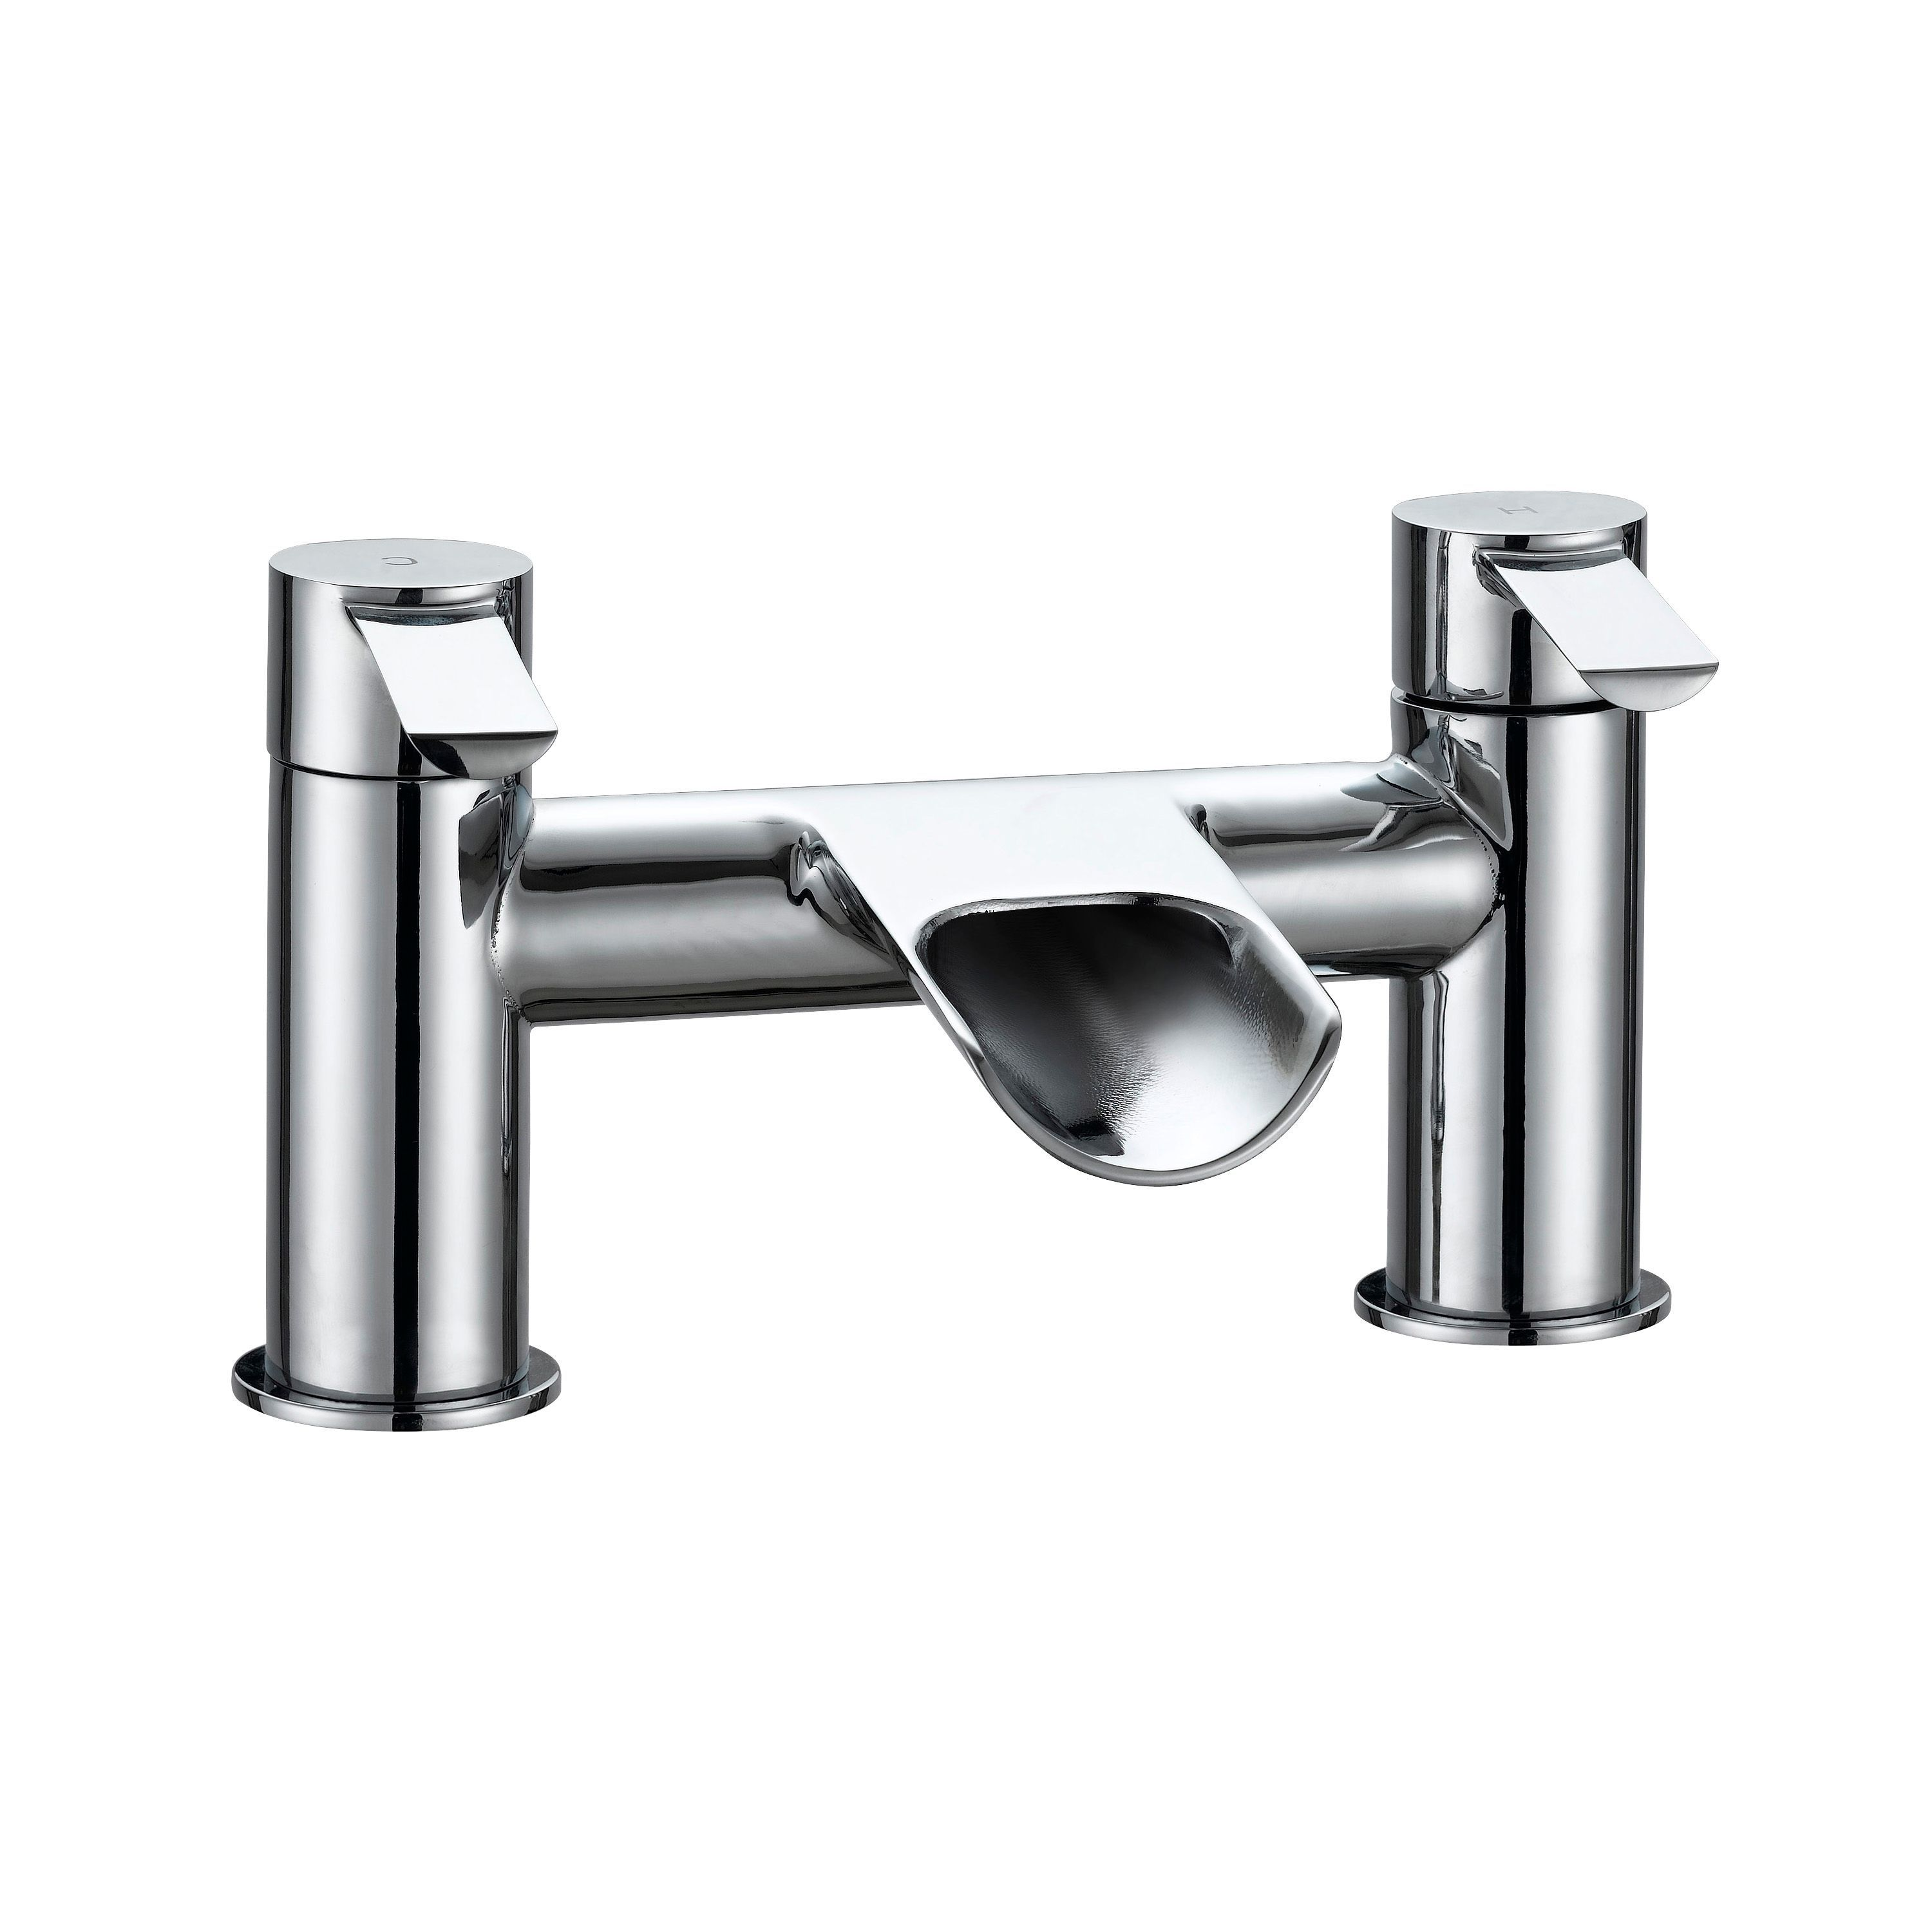 Cooke & Lewis Bamboo Chrome Bath Mixer Tap | Departments ...